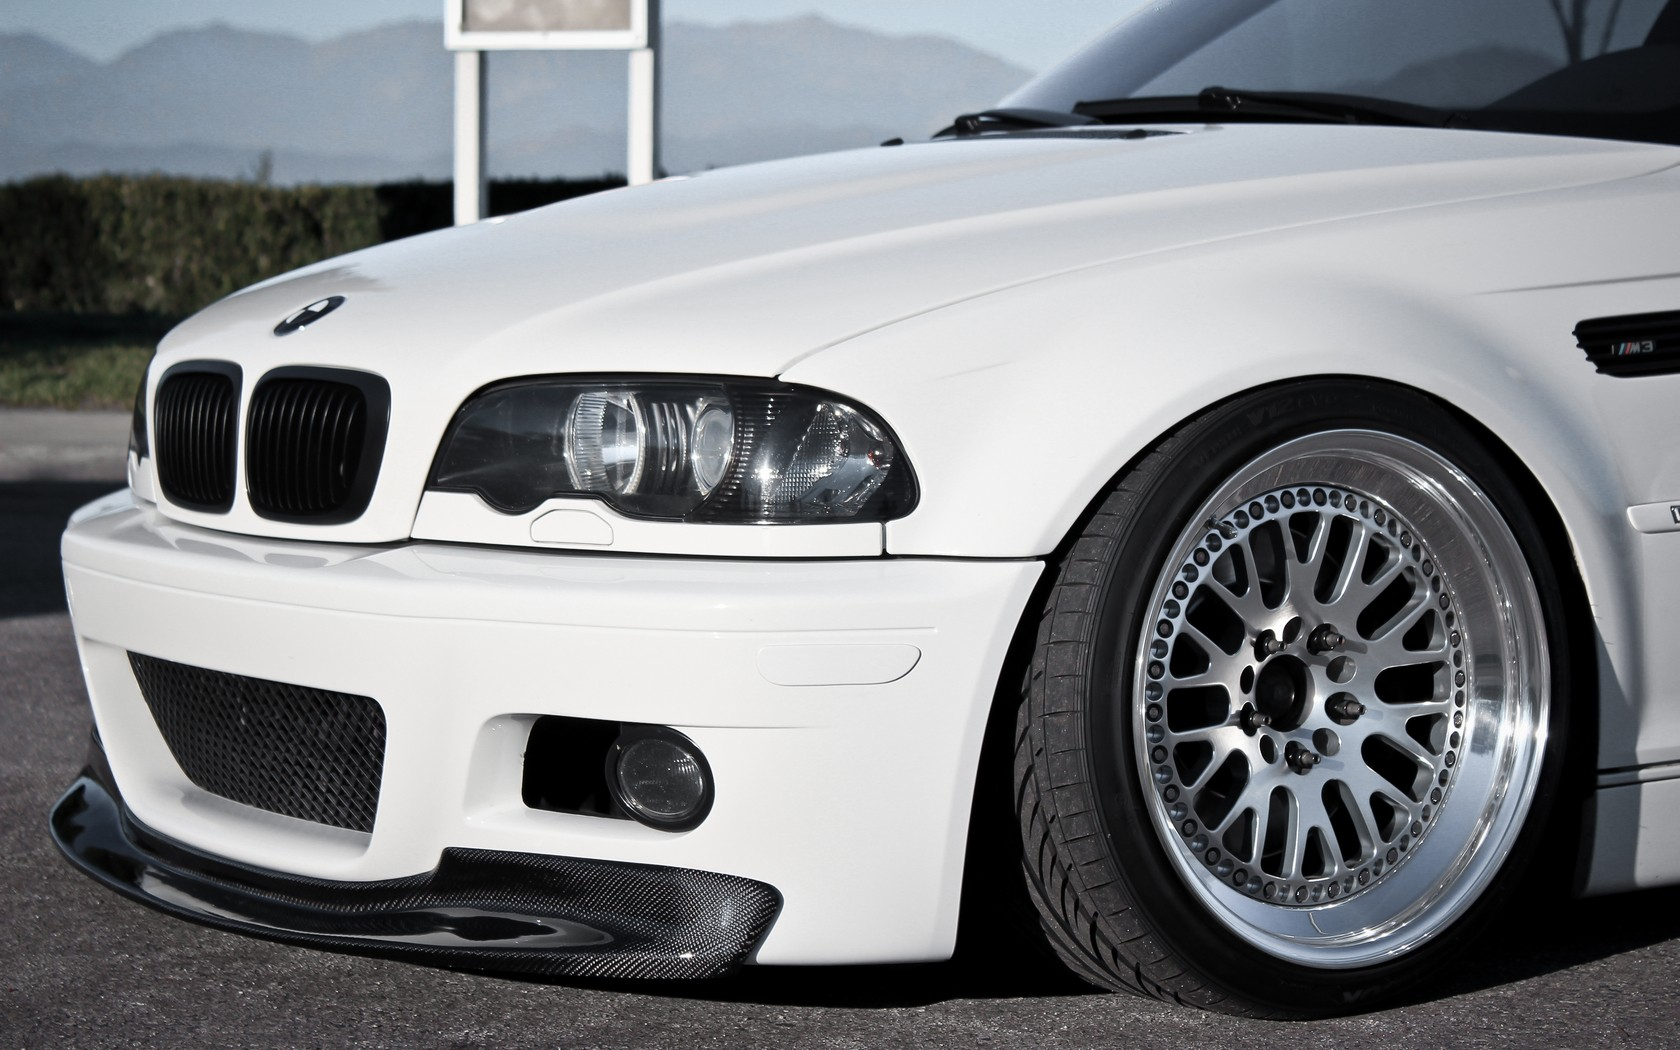 Bmw White Cars Vehicles Tuning Wheels Bmw M3 Sports Cars Bmw E46 Luxury Sport Cars Wallpaper 1680x1050 183053 Wallpaperup